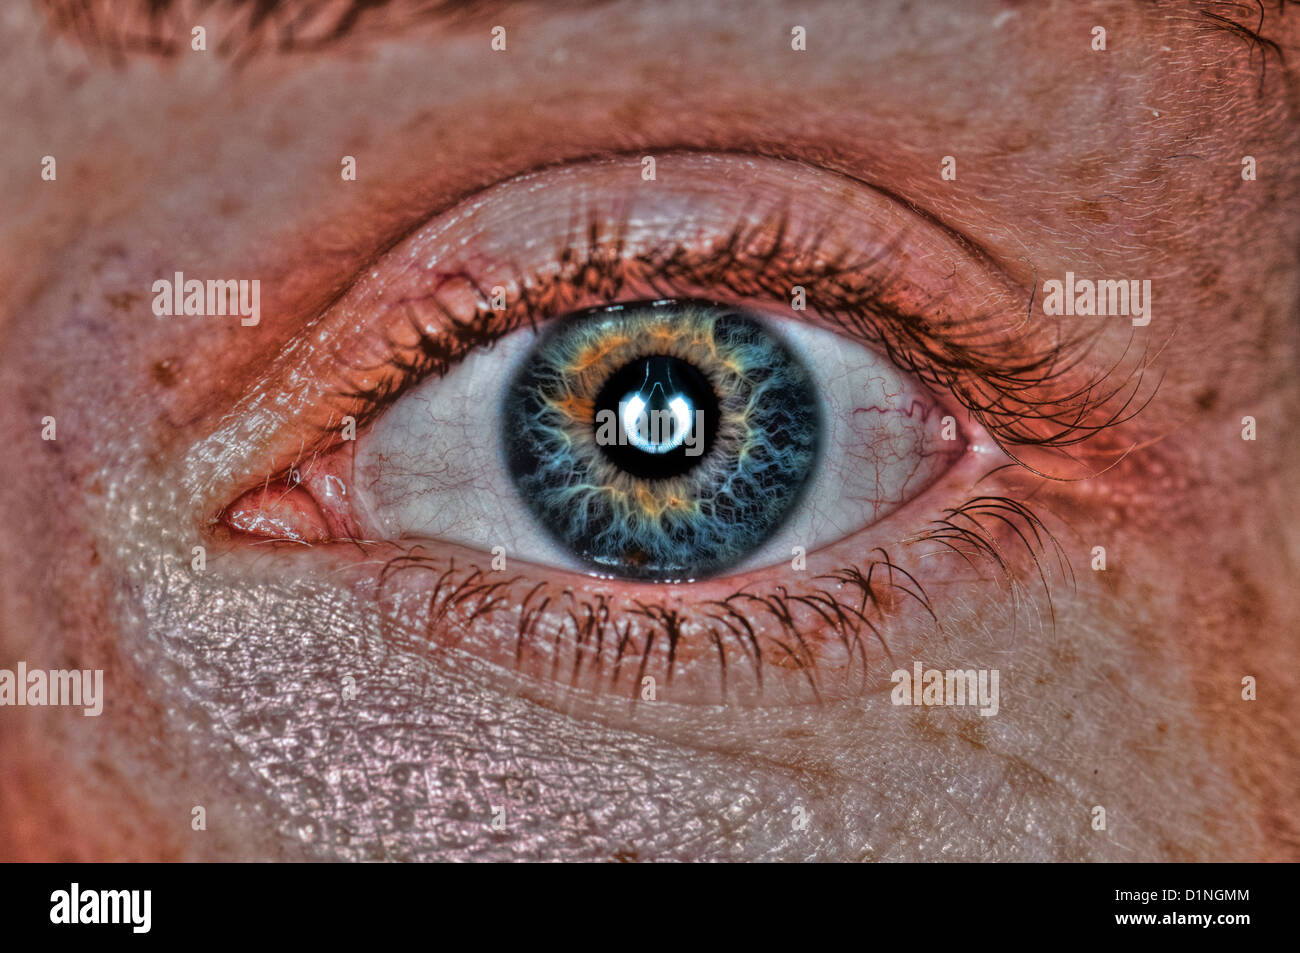 Extreme closeup of a human eye green - Stock Image